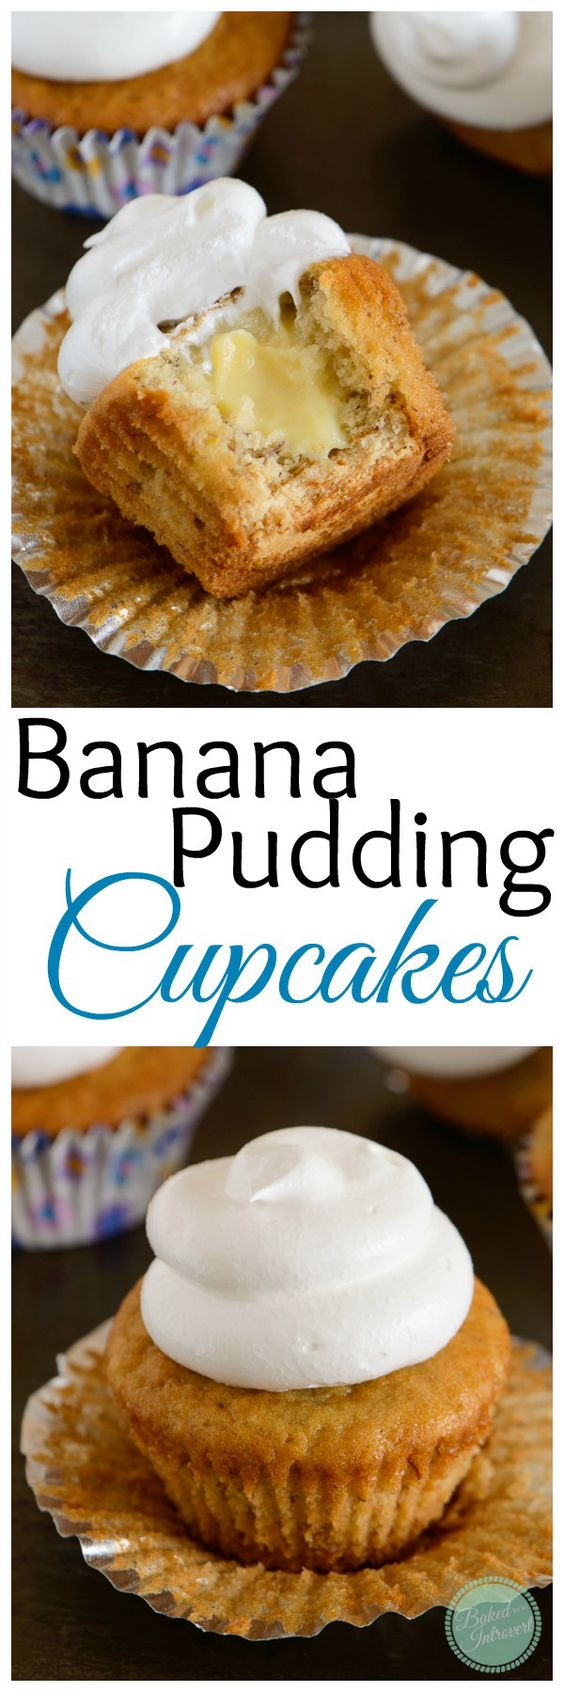 The ultimate homemade banana pudding… in a CUPCAKE! Super-moist banana cupcakes with a nilla wafer bottom, filled with vanilla pudding, and topped with marshmallow frosting.